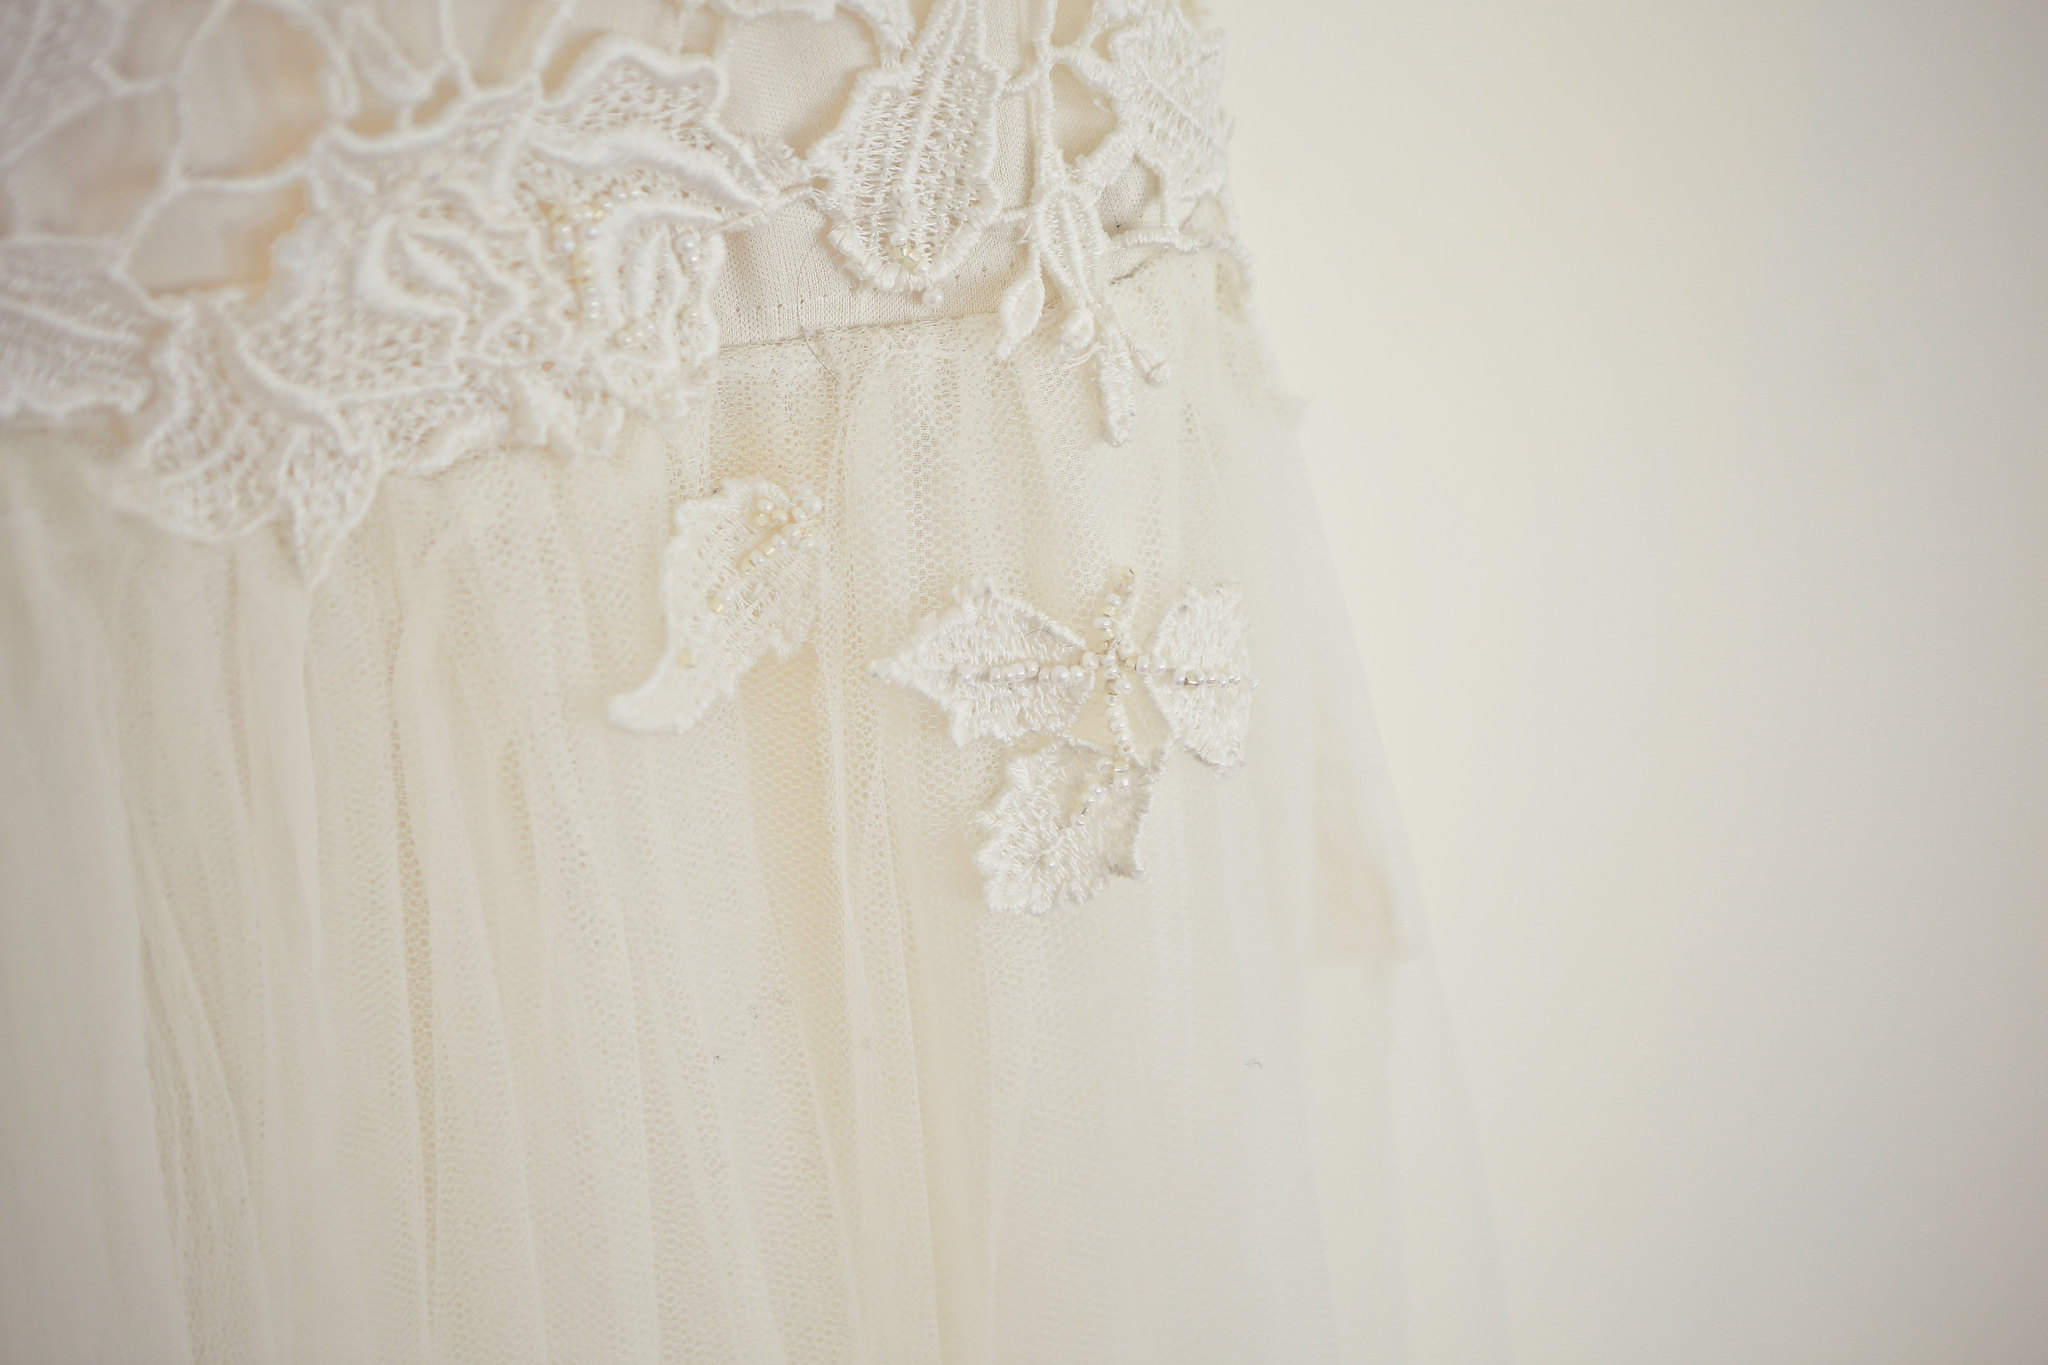 delicate beading on a lace and tulle wedding dress